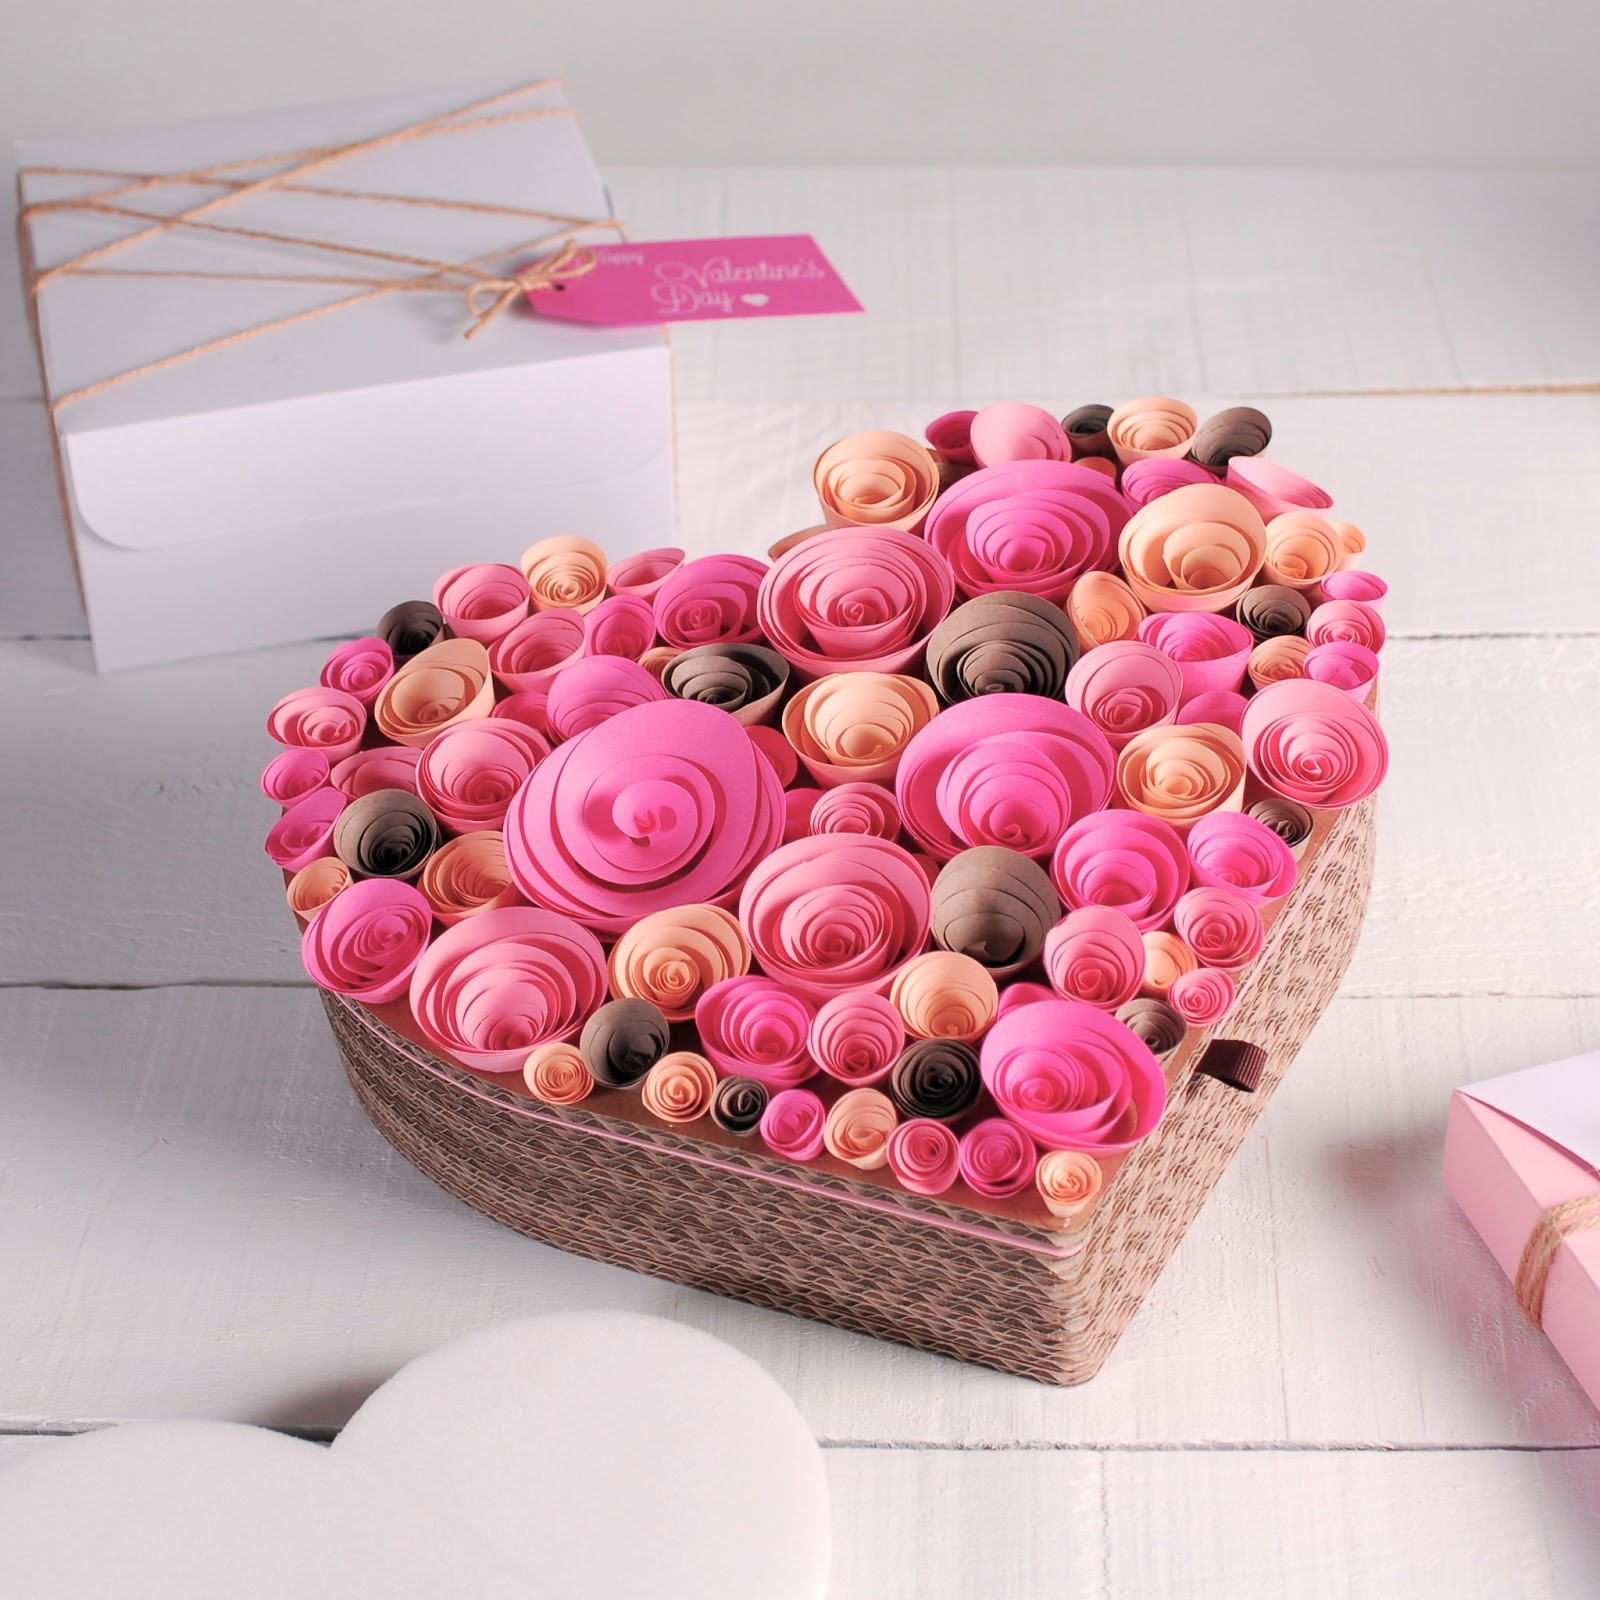 Valentine Day Gift Box Ideas  Gift wrapping ideas for Valentines Day How to decorate a